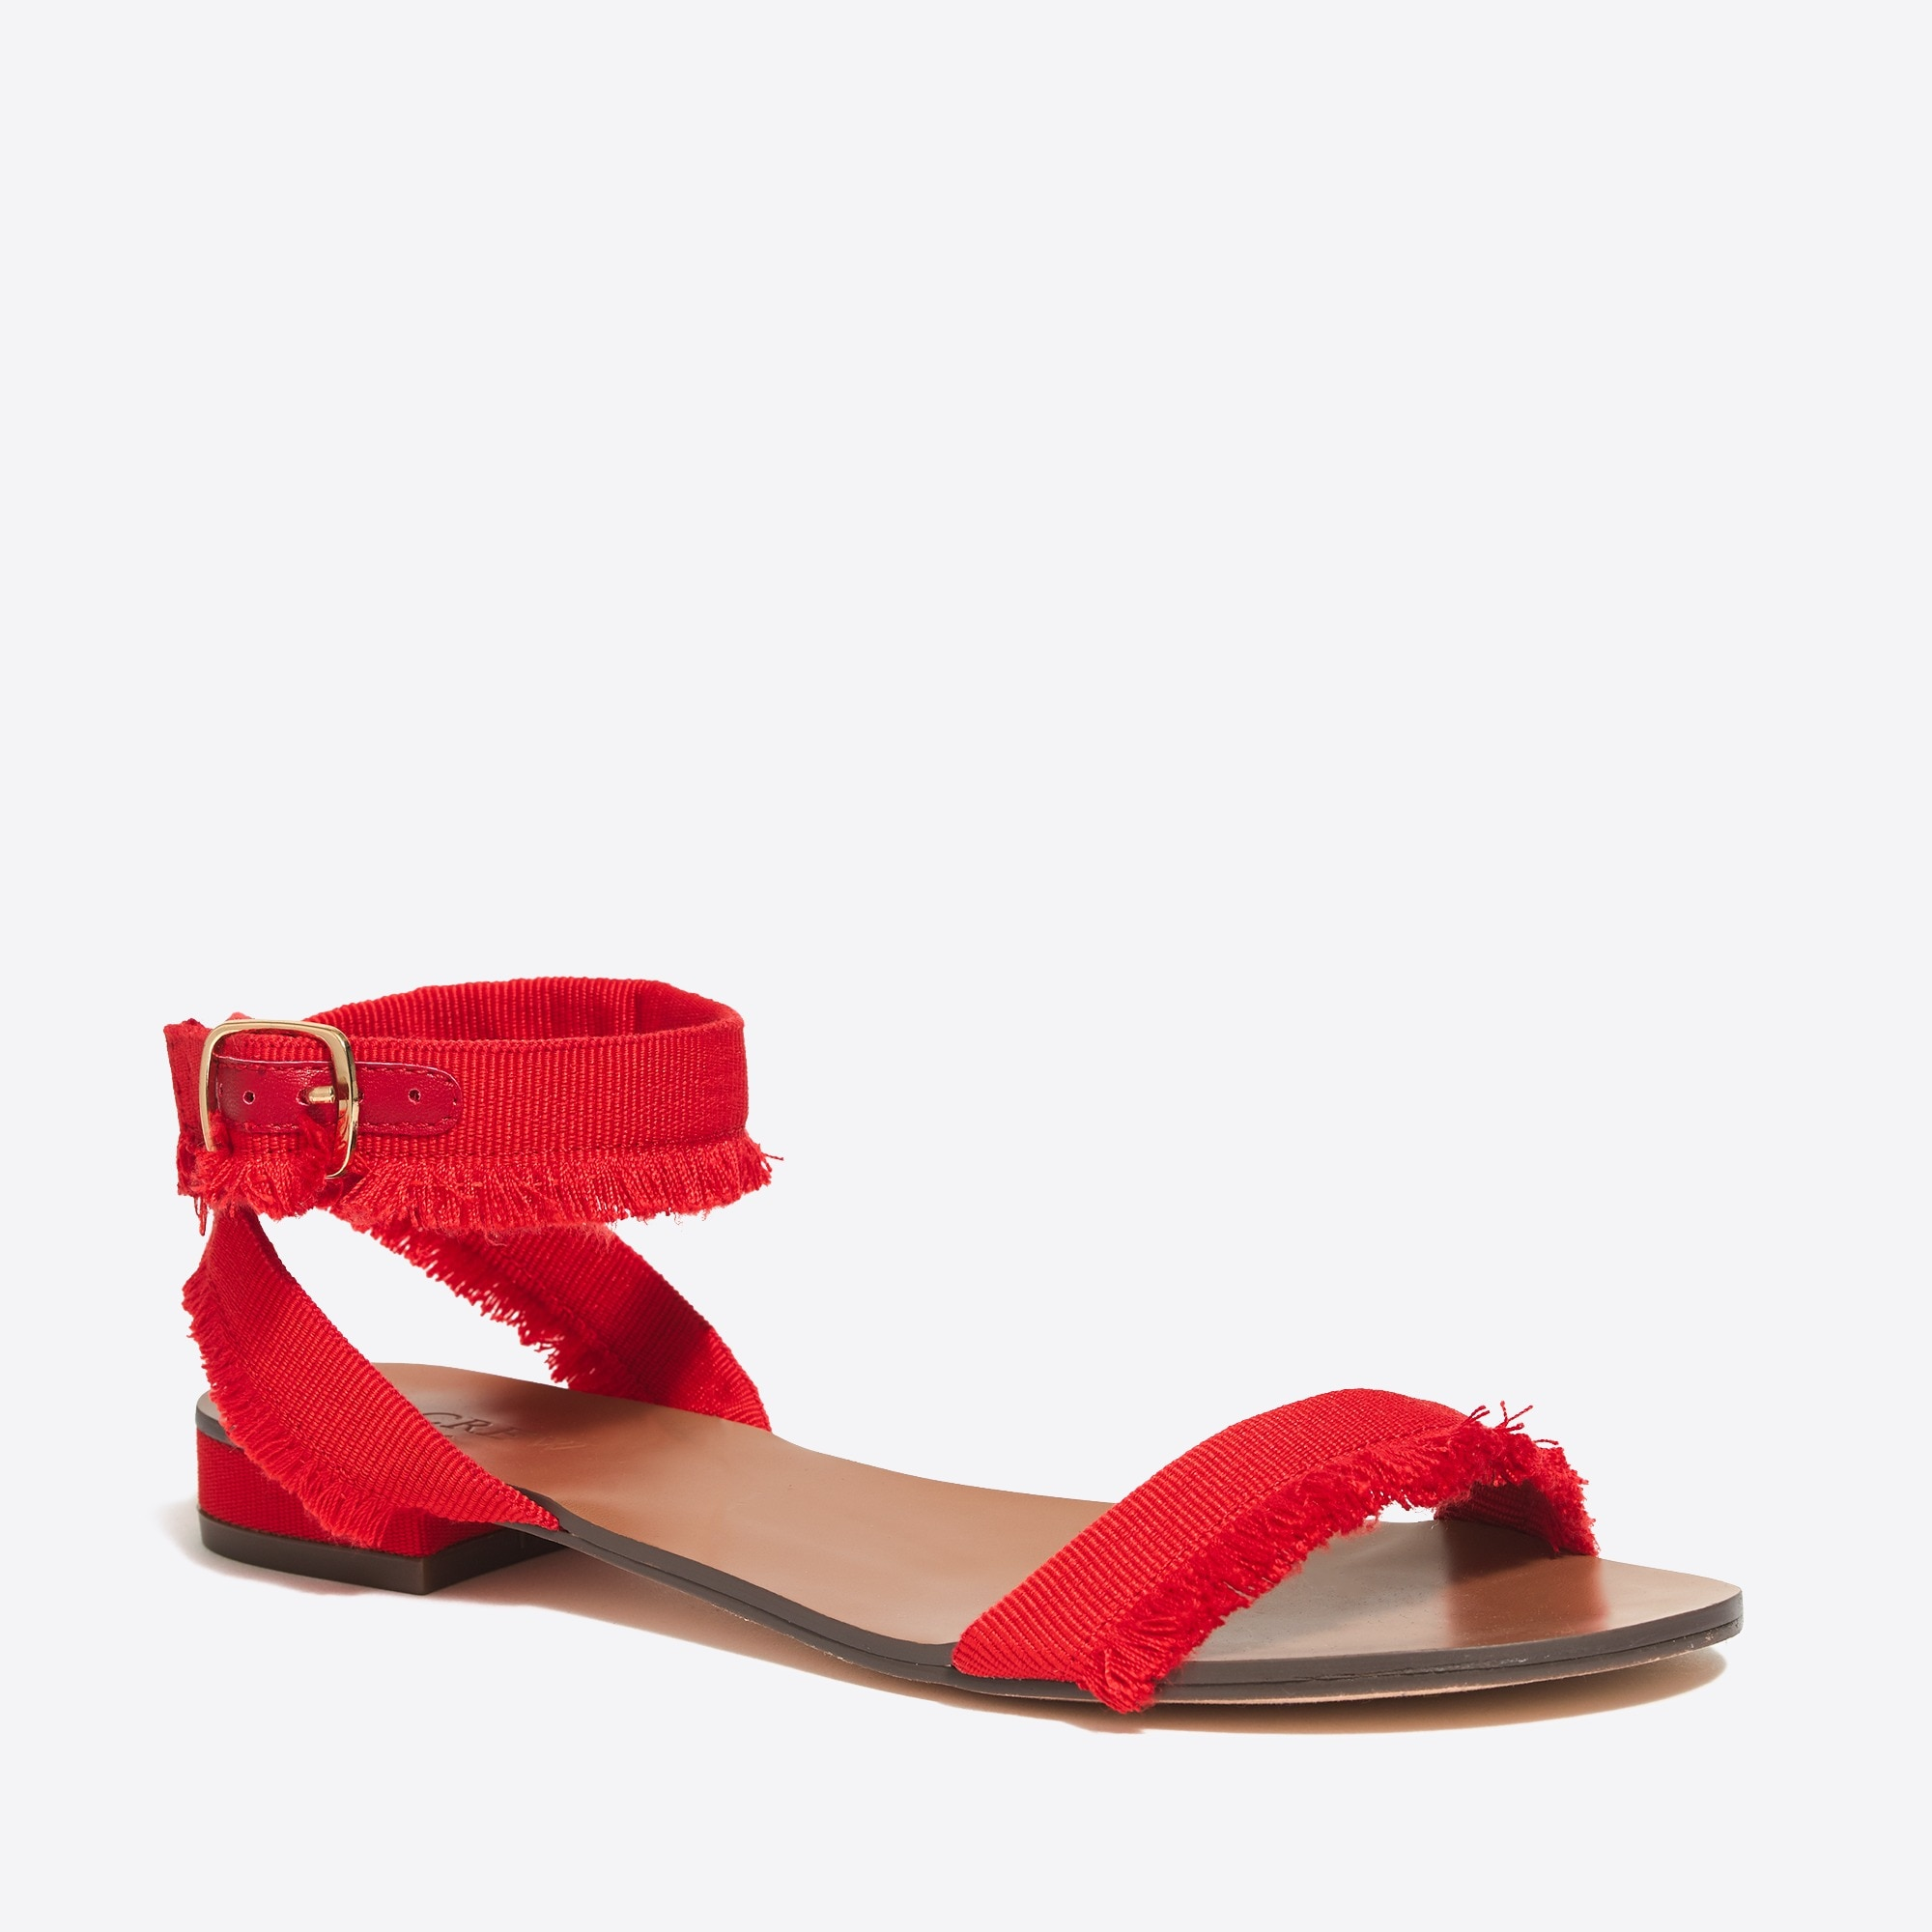 raw-edge grosgrain sandals : factorywomen sizes 5 & 12 shoes